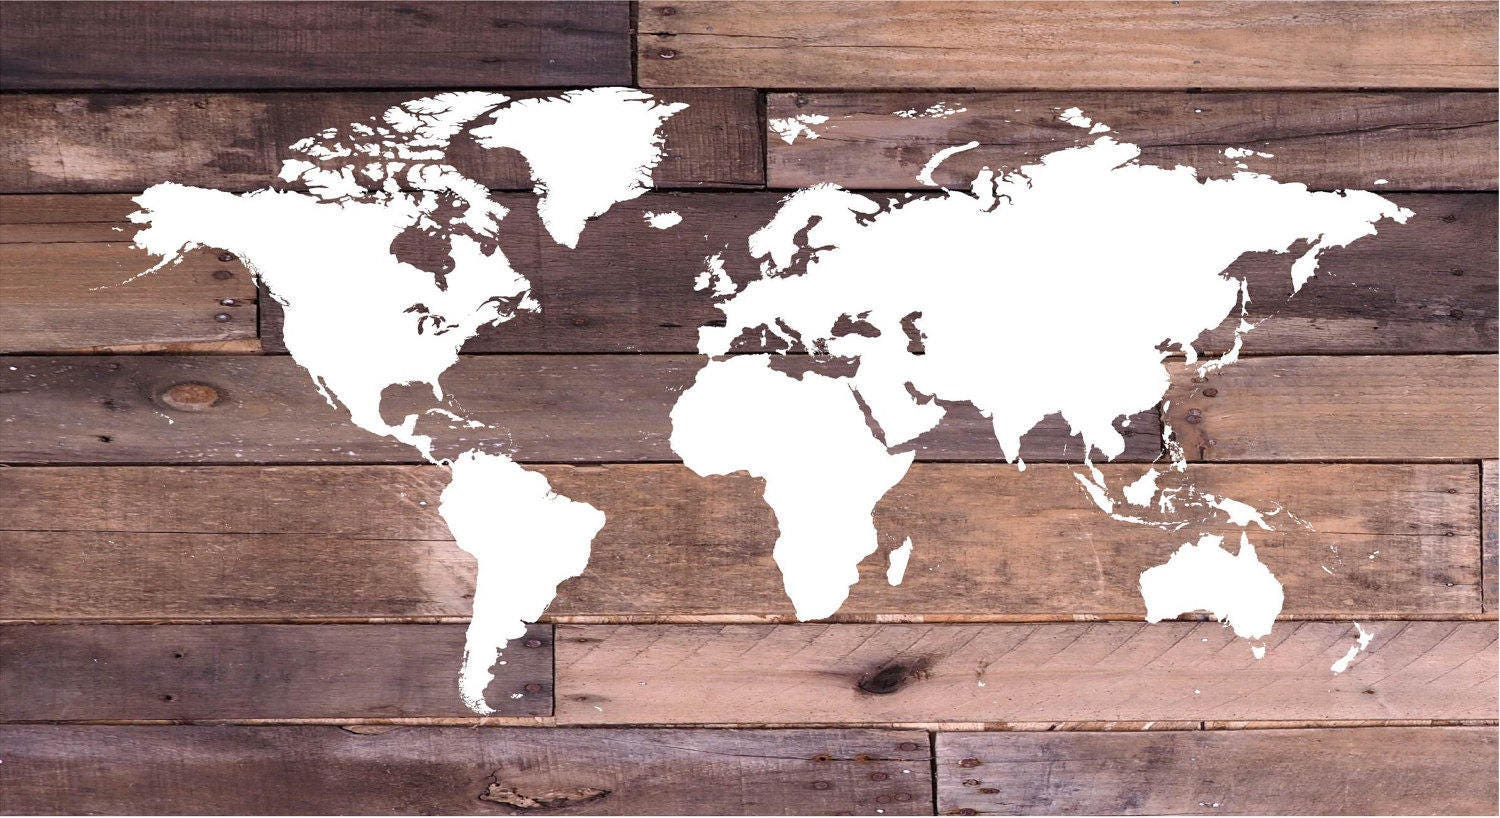 Reclaimed wood world map wall art canvas wall art wood sign reclaimed wood world map wall art canvas wall art wood sign print nautical graduation gift christmas den decor office gumiabroncs Choice Image